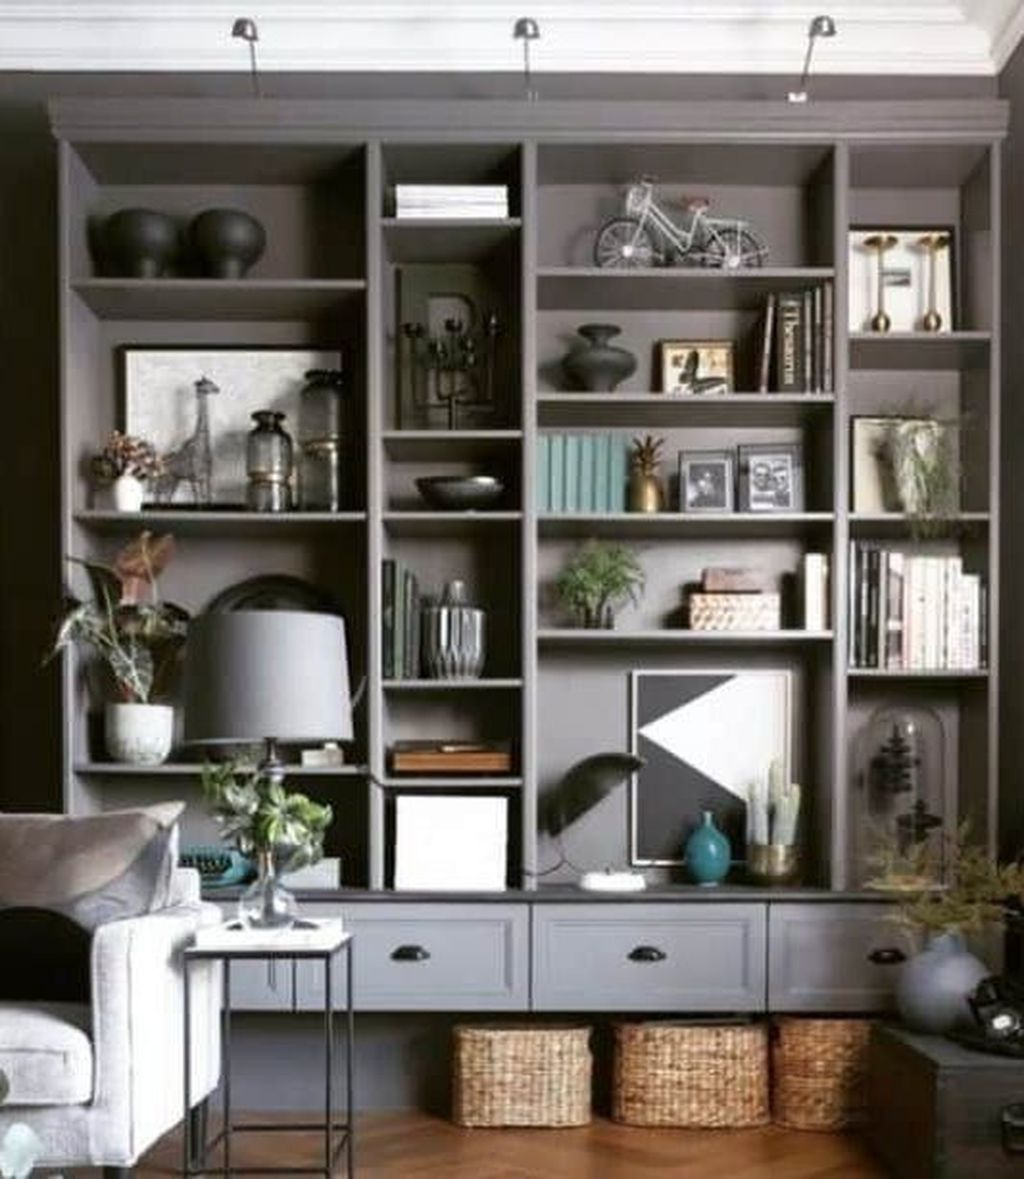 32 Latest Ikea Billy Bookcase Design Ideas For Limited